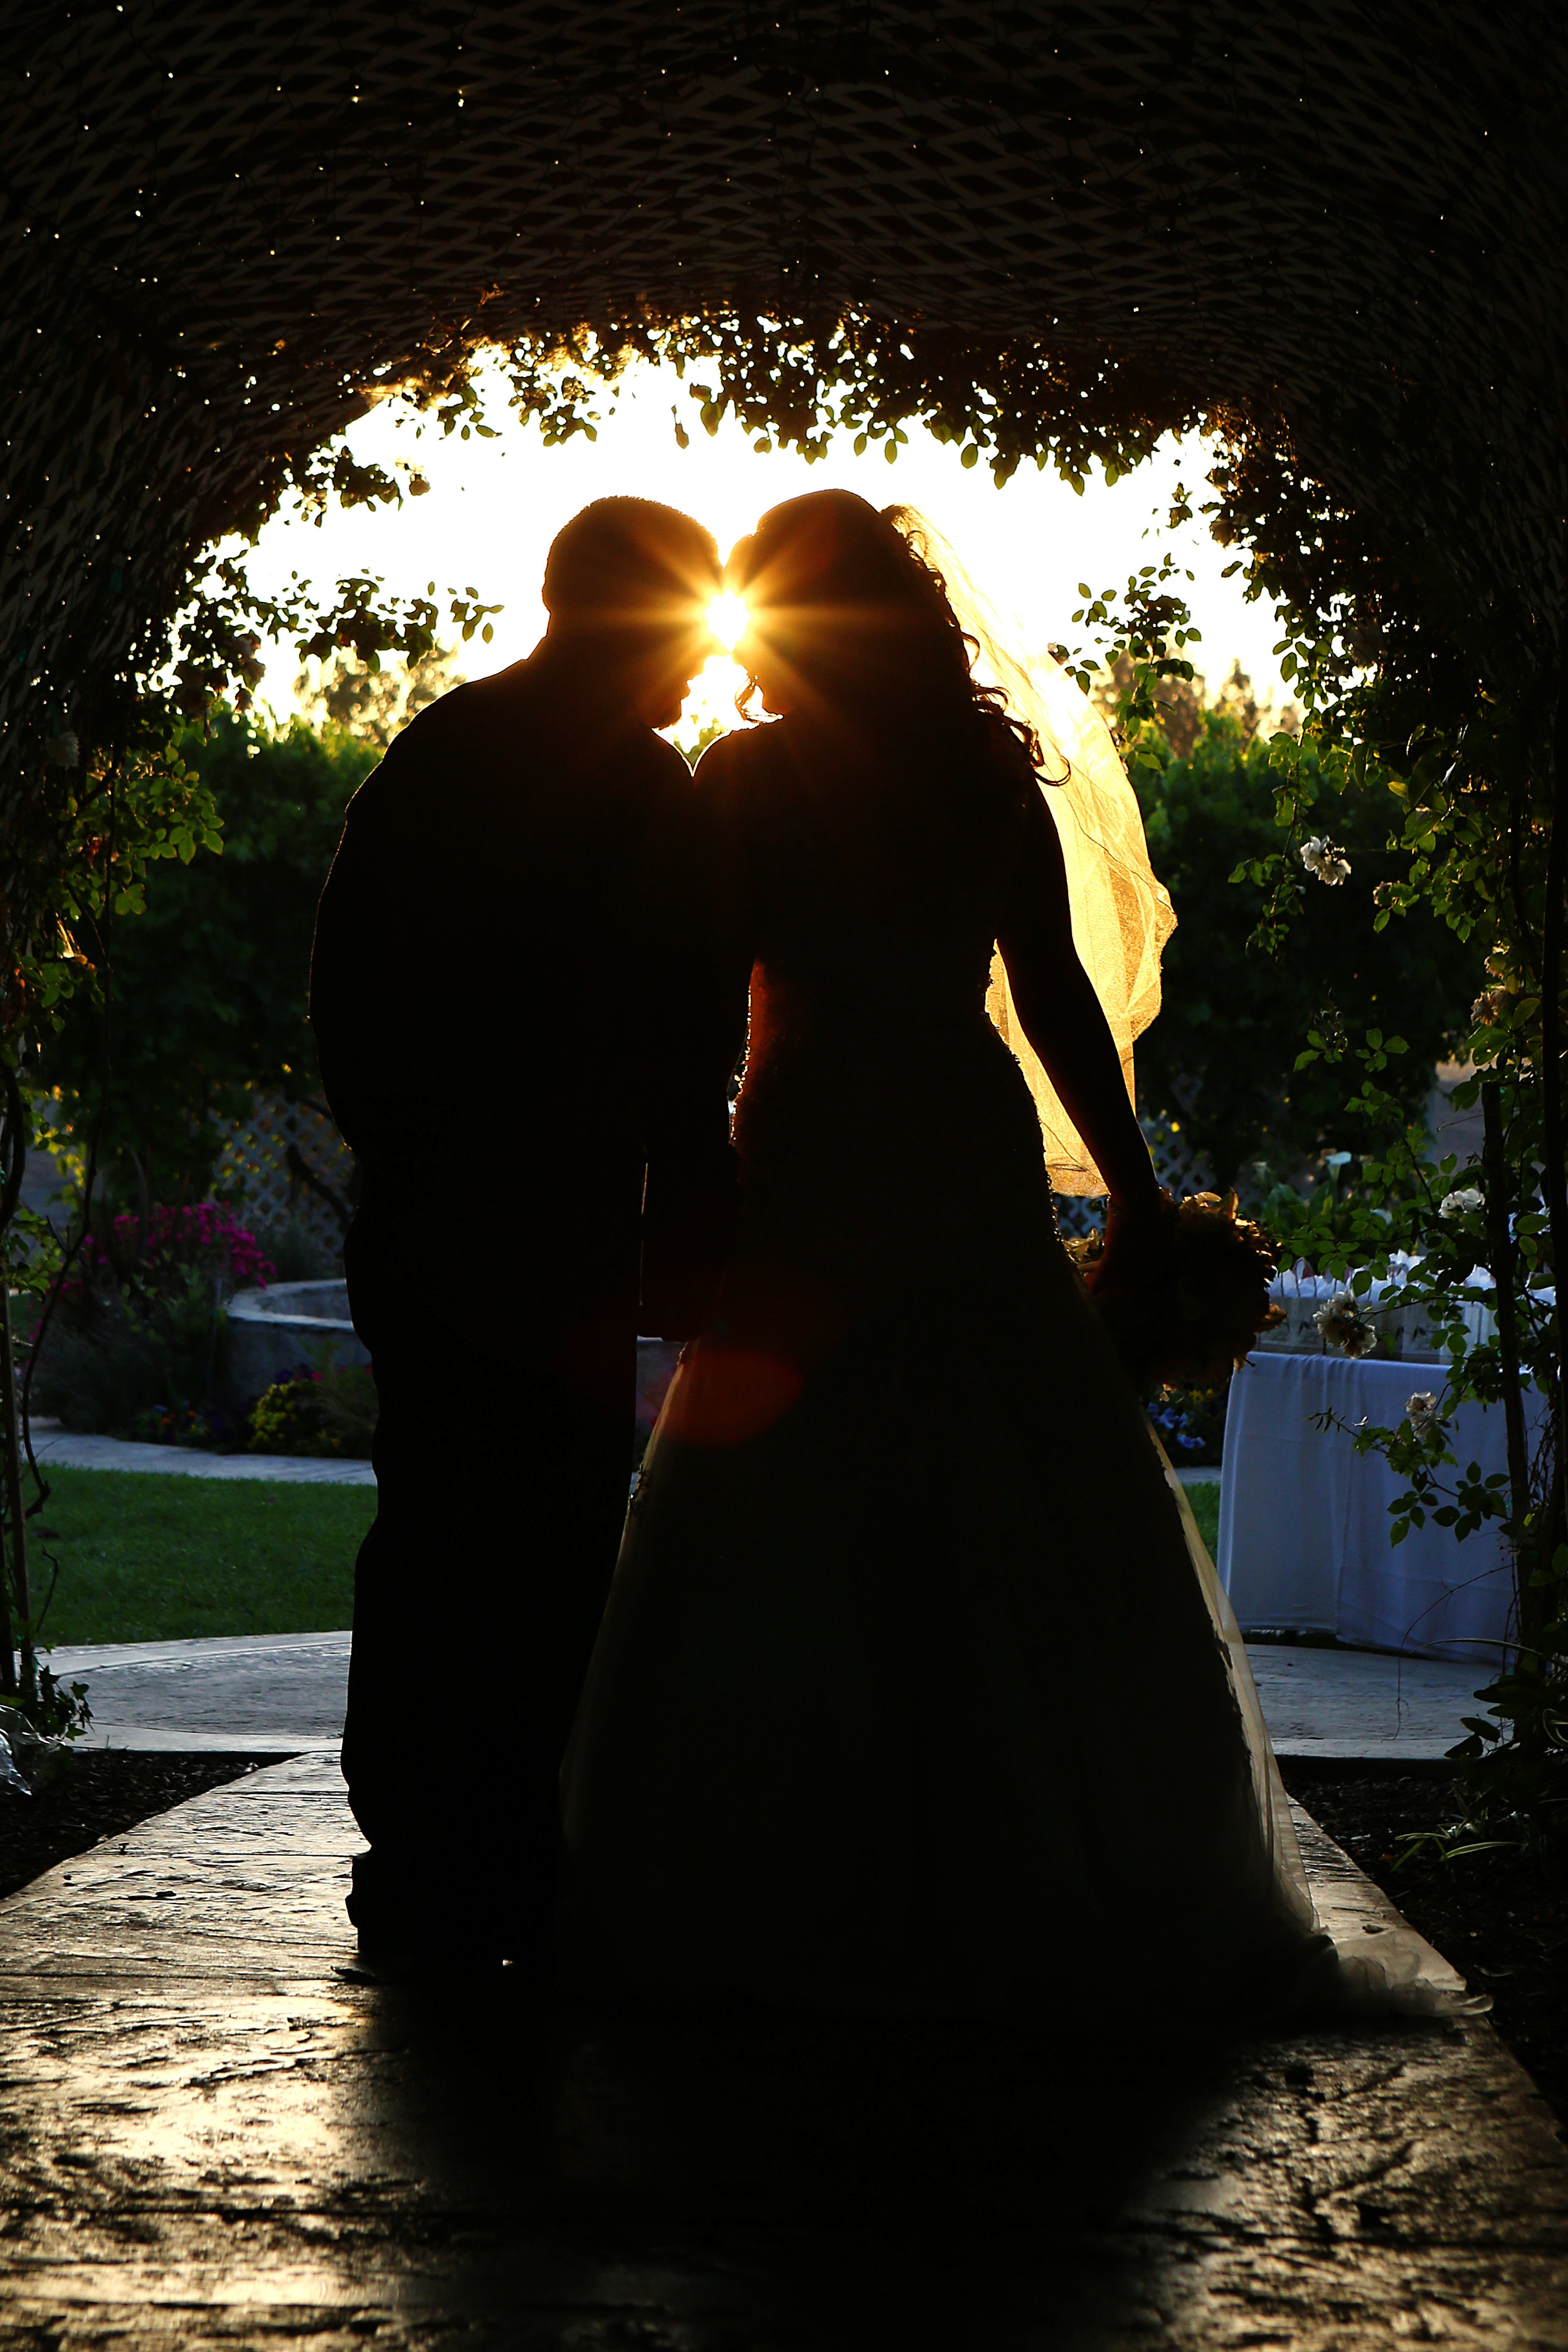 ShadowcatcherGalleryOne_SanDiegoWeddingPhotogrpaher_040.JPG